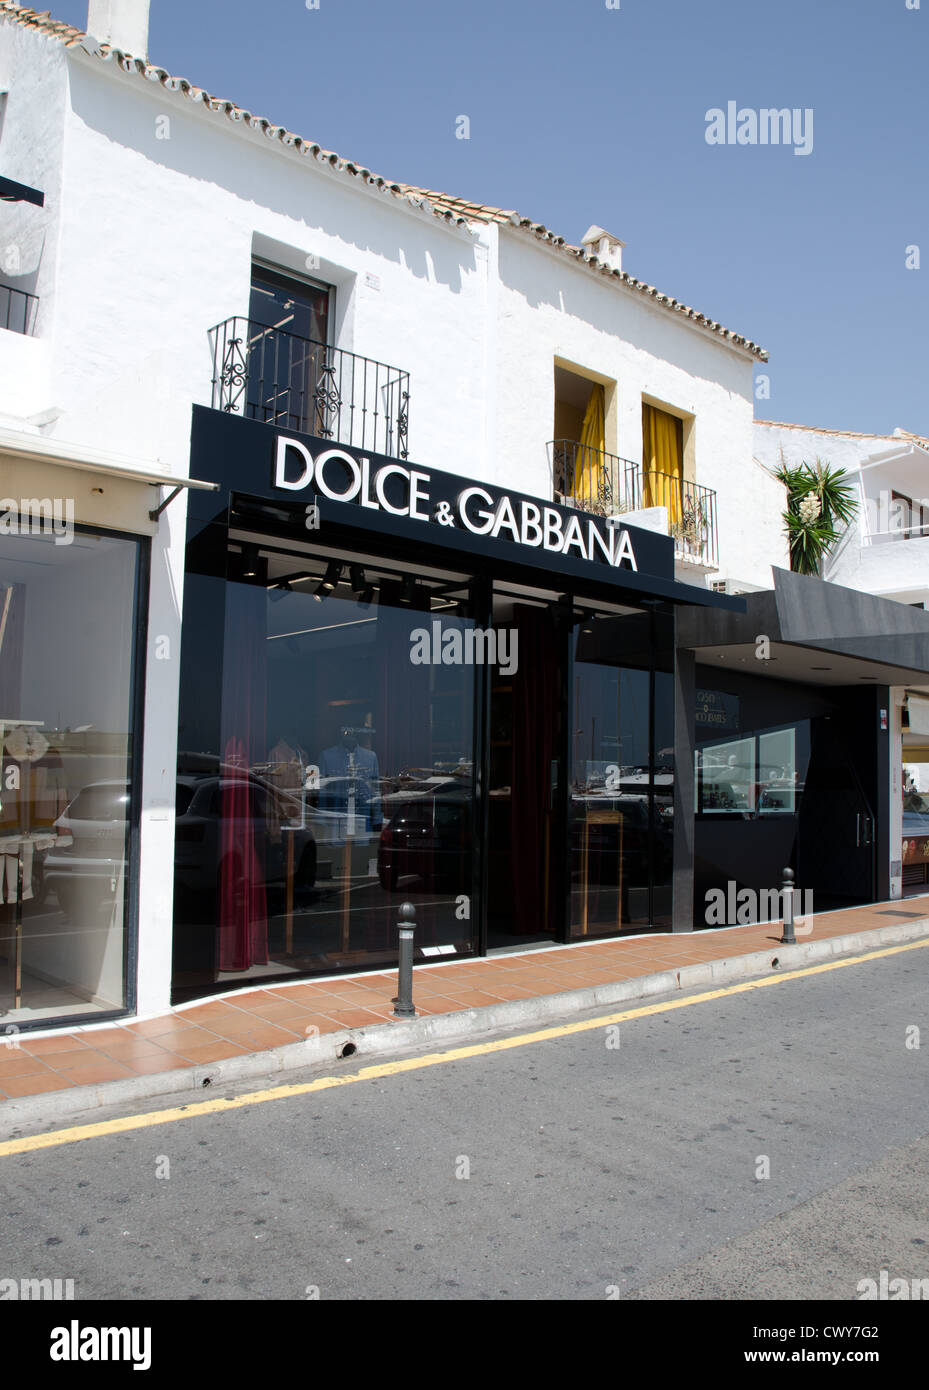 Dolce and Gabbana shop in Puerto Banus, Spain - Stock Image